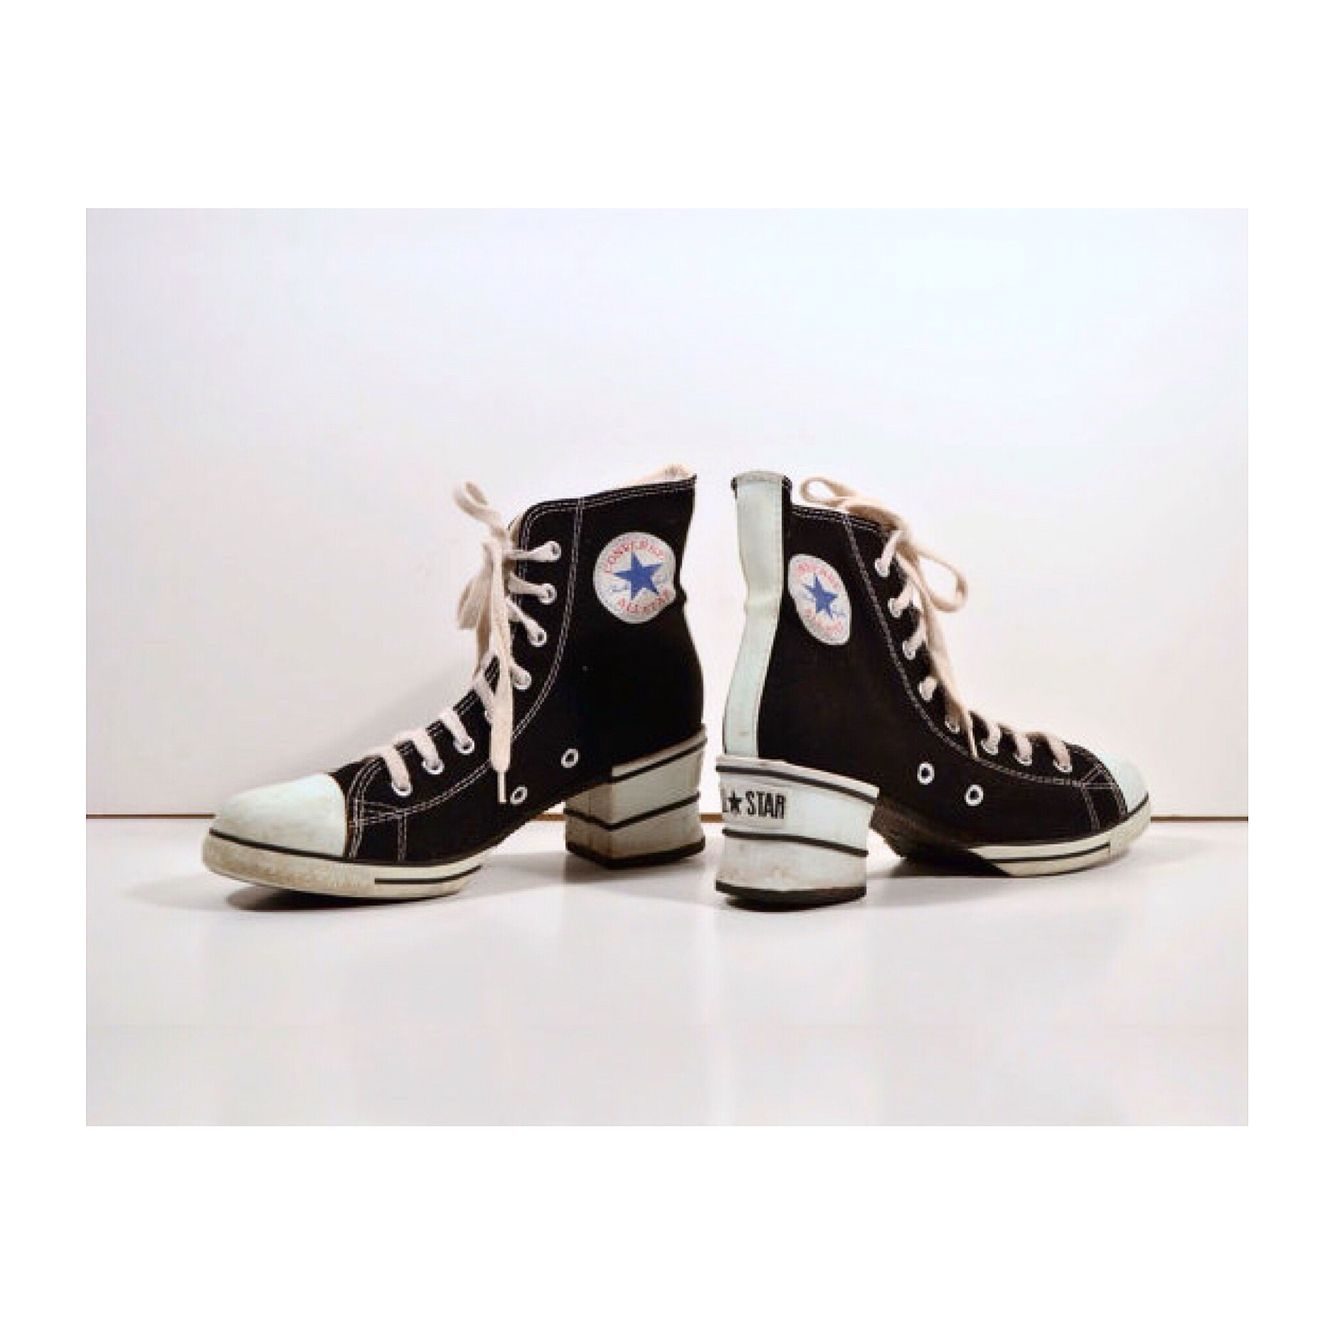 c5fd5f8fb84 Vintage 90s CONVERSE Women's All Stars Chuck Taylor High Tops PLATFORM  Black…